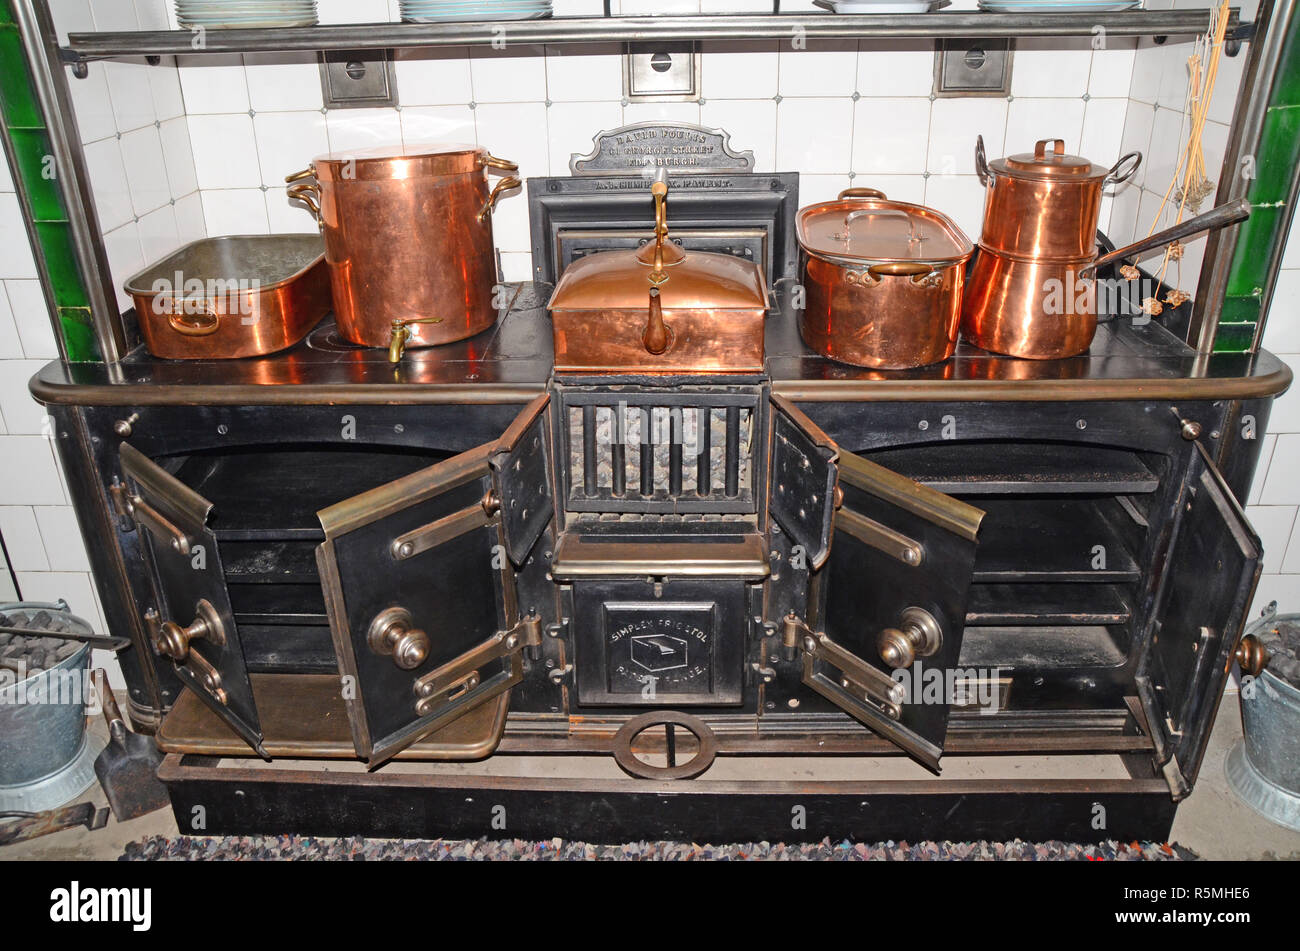 large. antique / vintage kitchen hearth with a variety of  copper pans and pots on it. - Stock Image